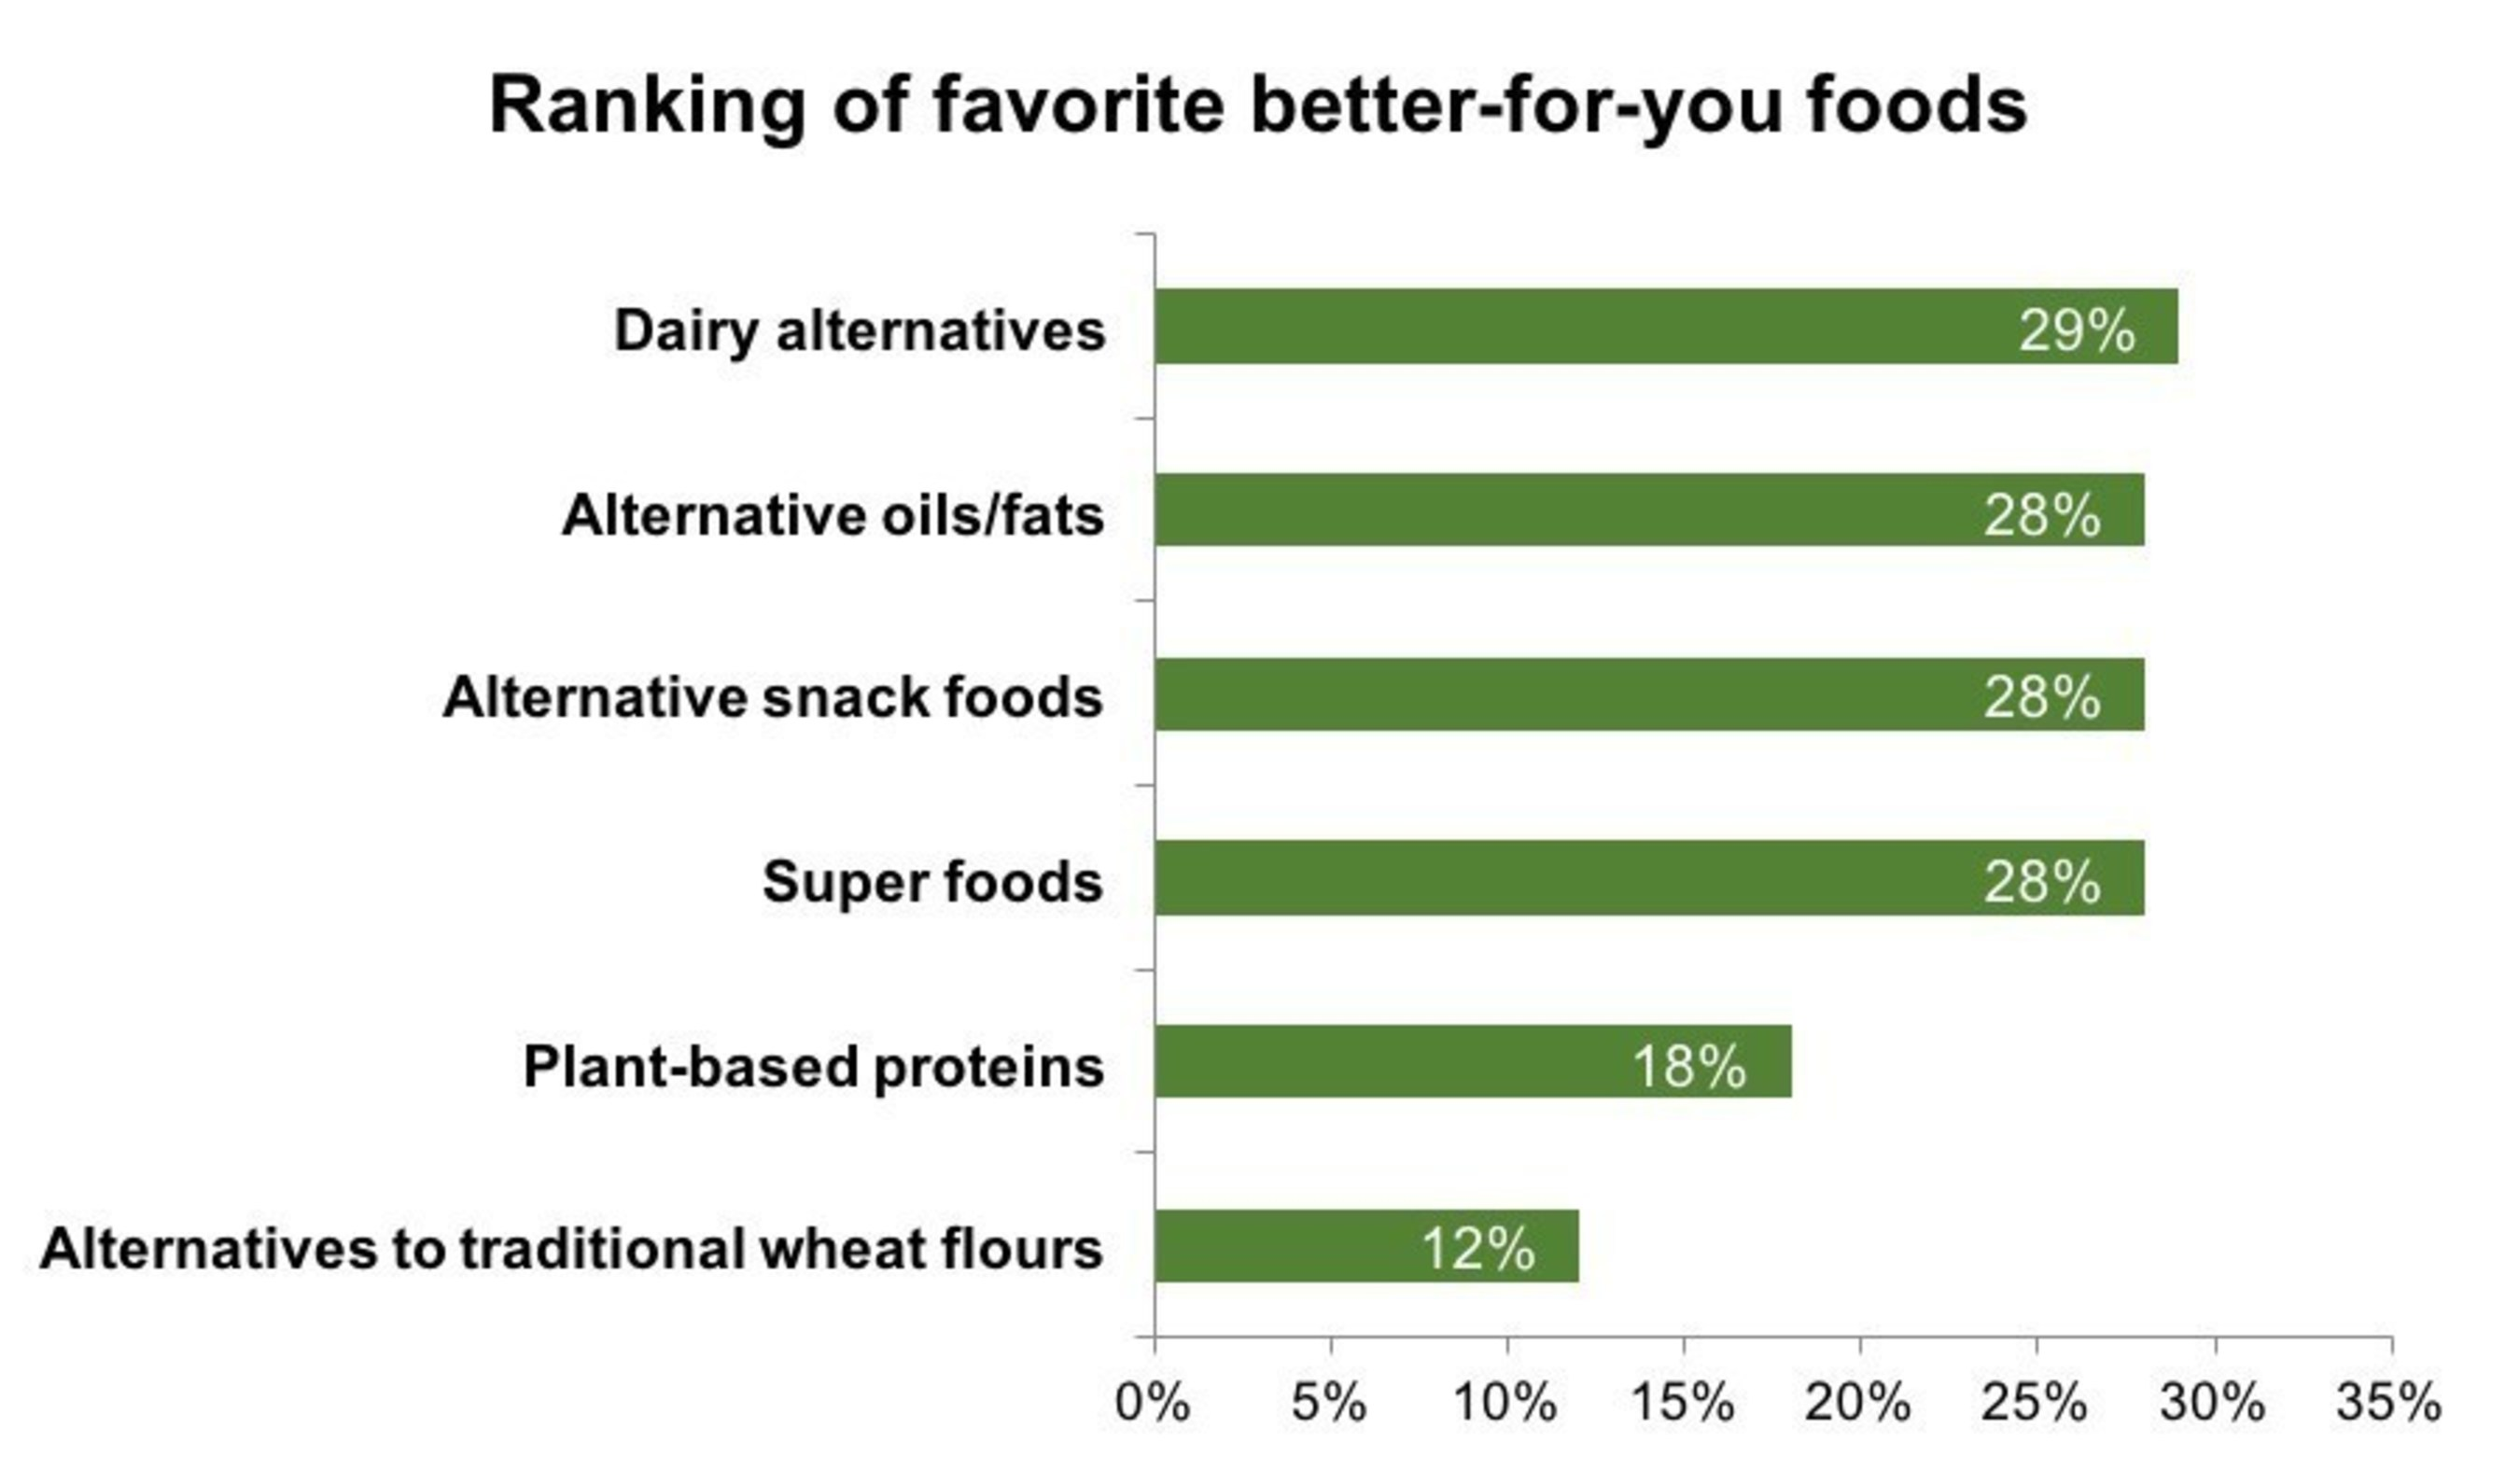 """Nearly one-third of respondents in a recent survey revealed that dairy alternatives rank as their favorite """"better-for-you"""" food. The survey was conducted online by 72 Point Inc. on behalf of Earth Balance."""